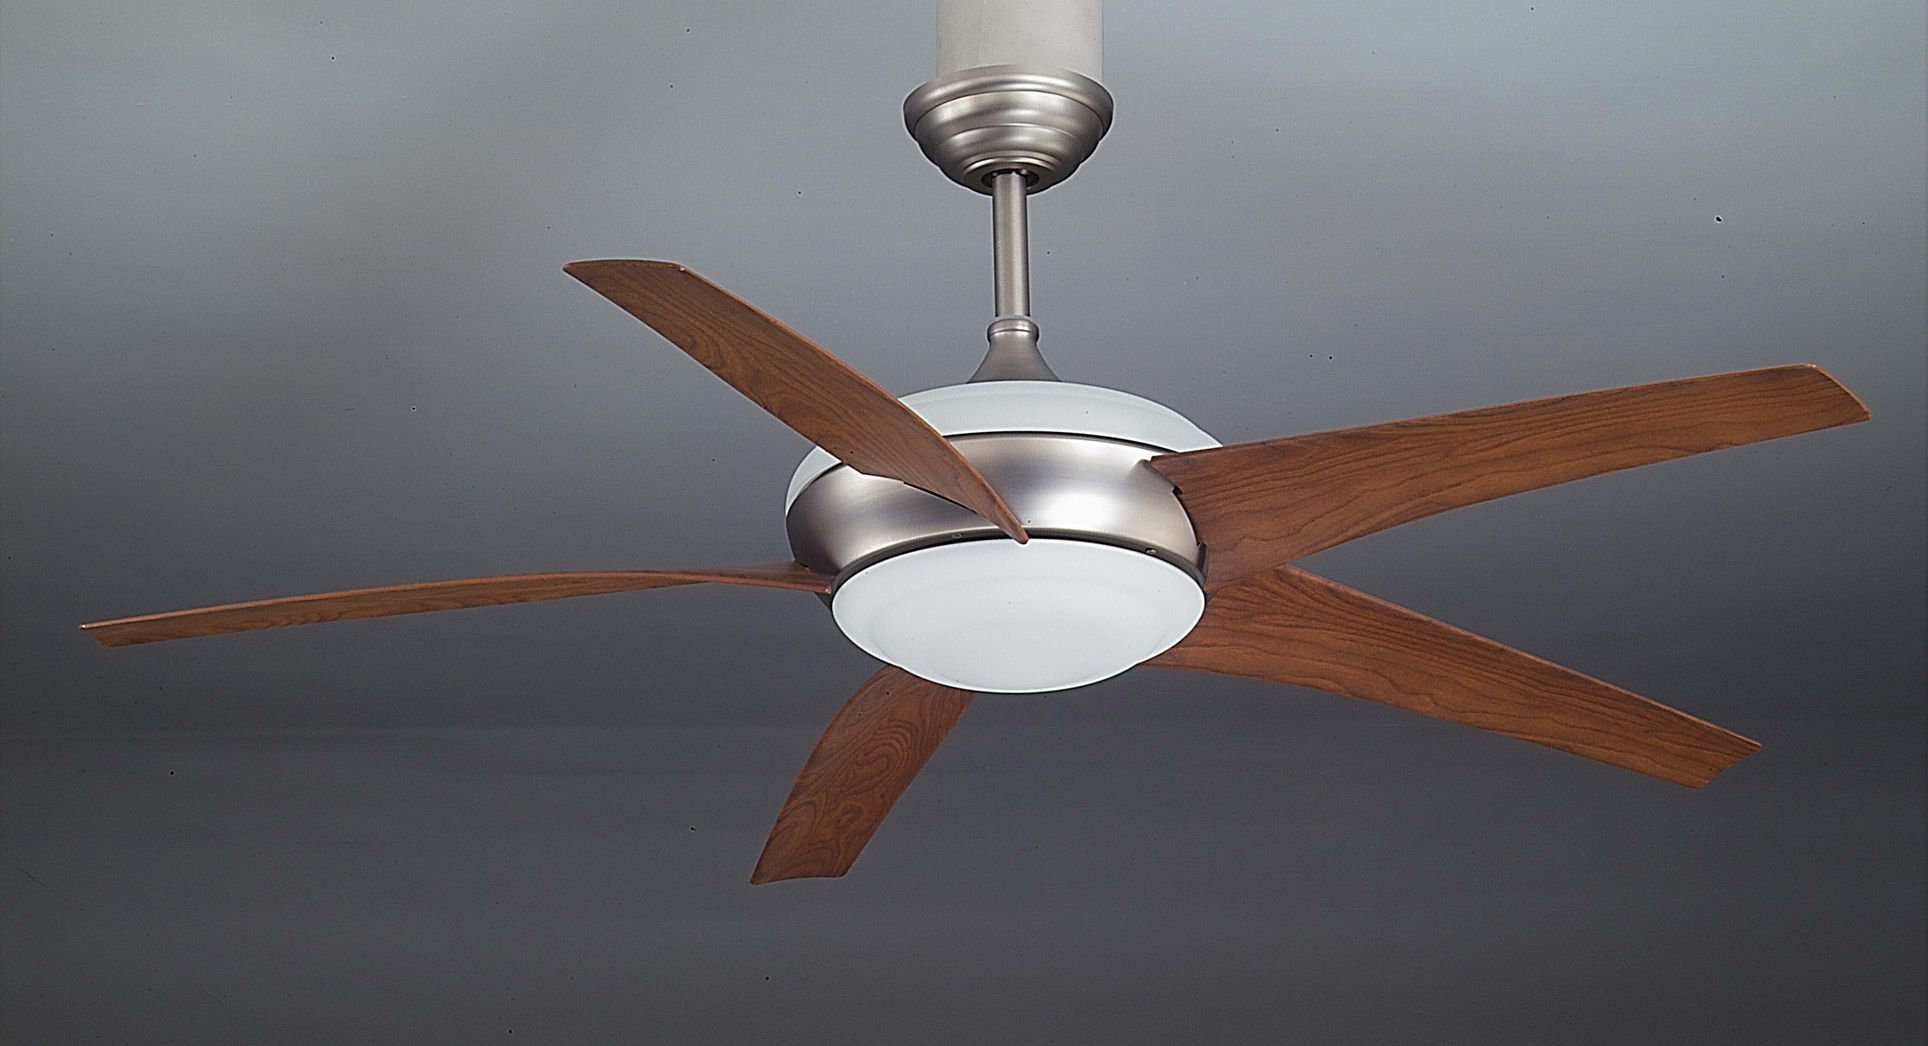 Ceiling Fans With Lights That Have Earned The Energy Star Are 60